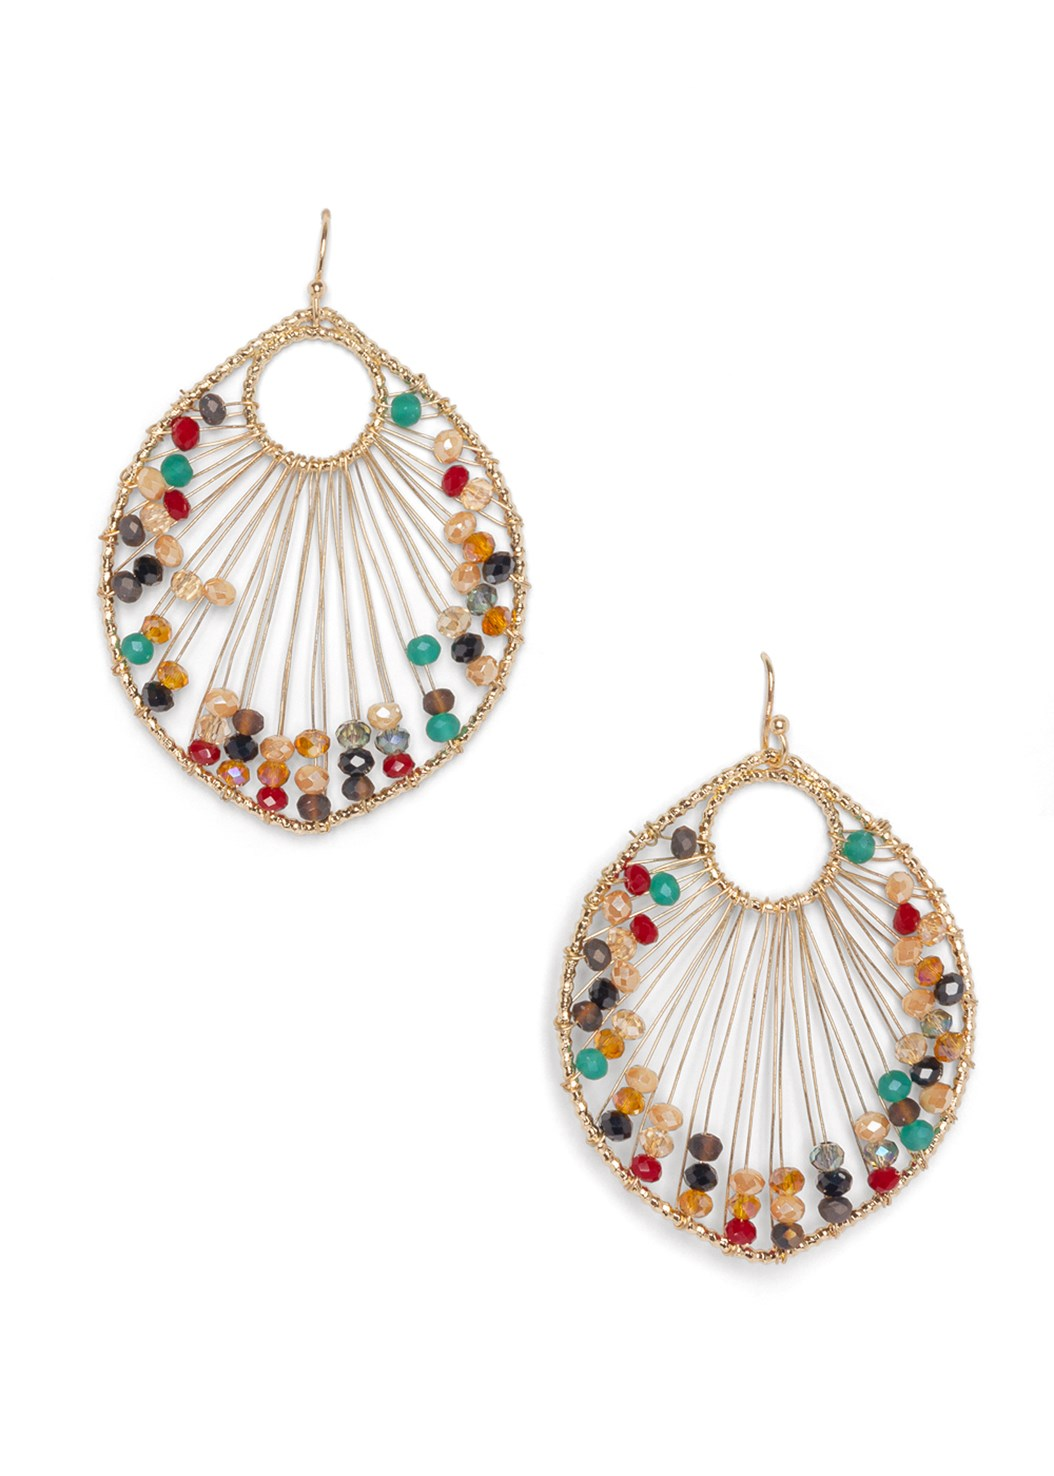 Beaded Leaf Shape Earrings,Cut Out Cold Shoulder Top